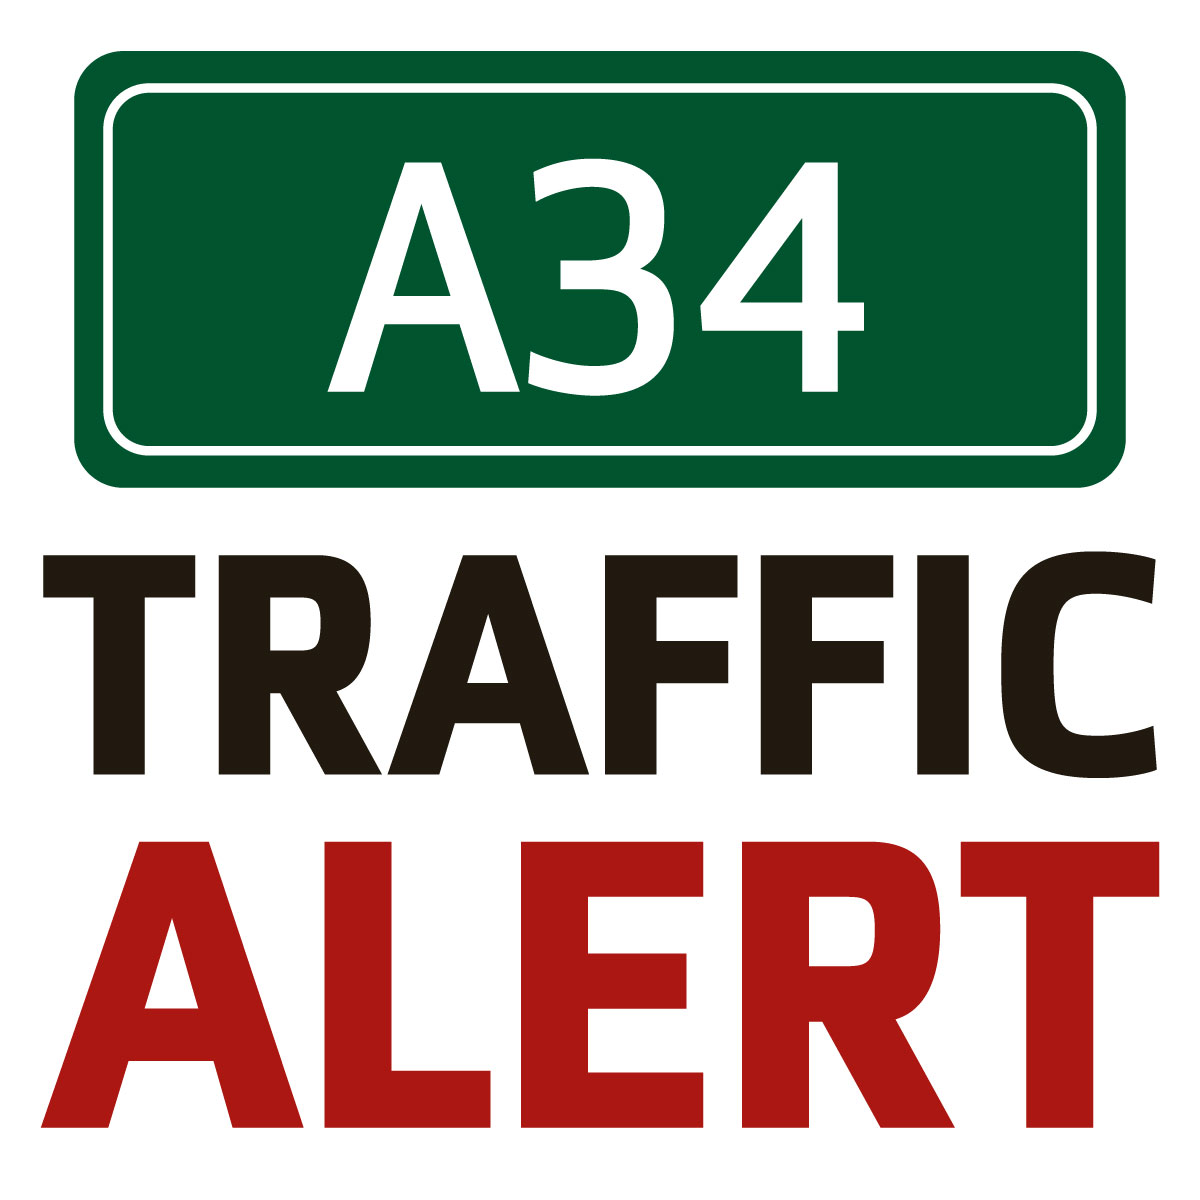 Delays on the A34 this morning due to deer on the road